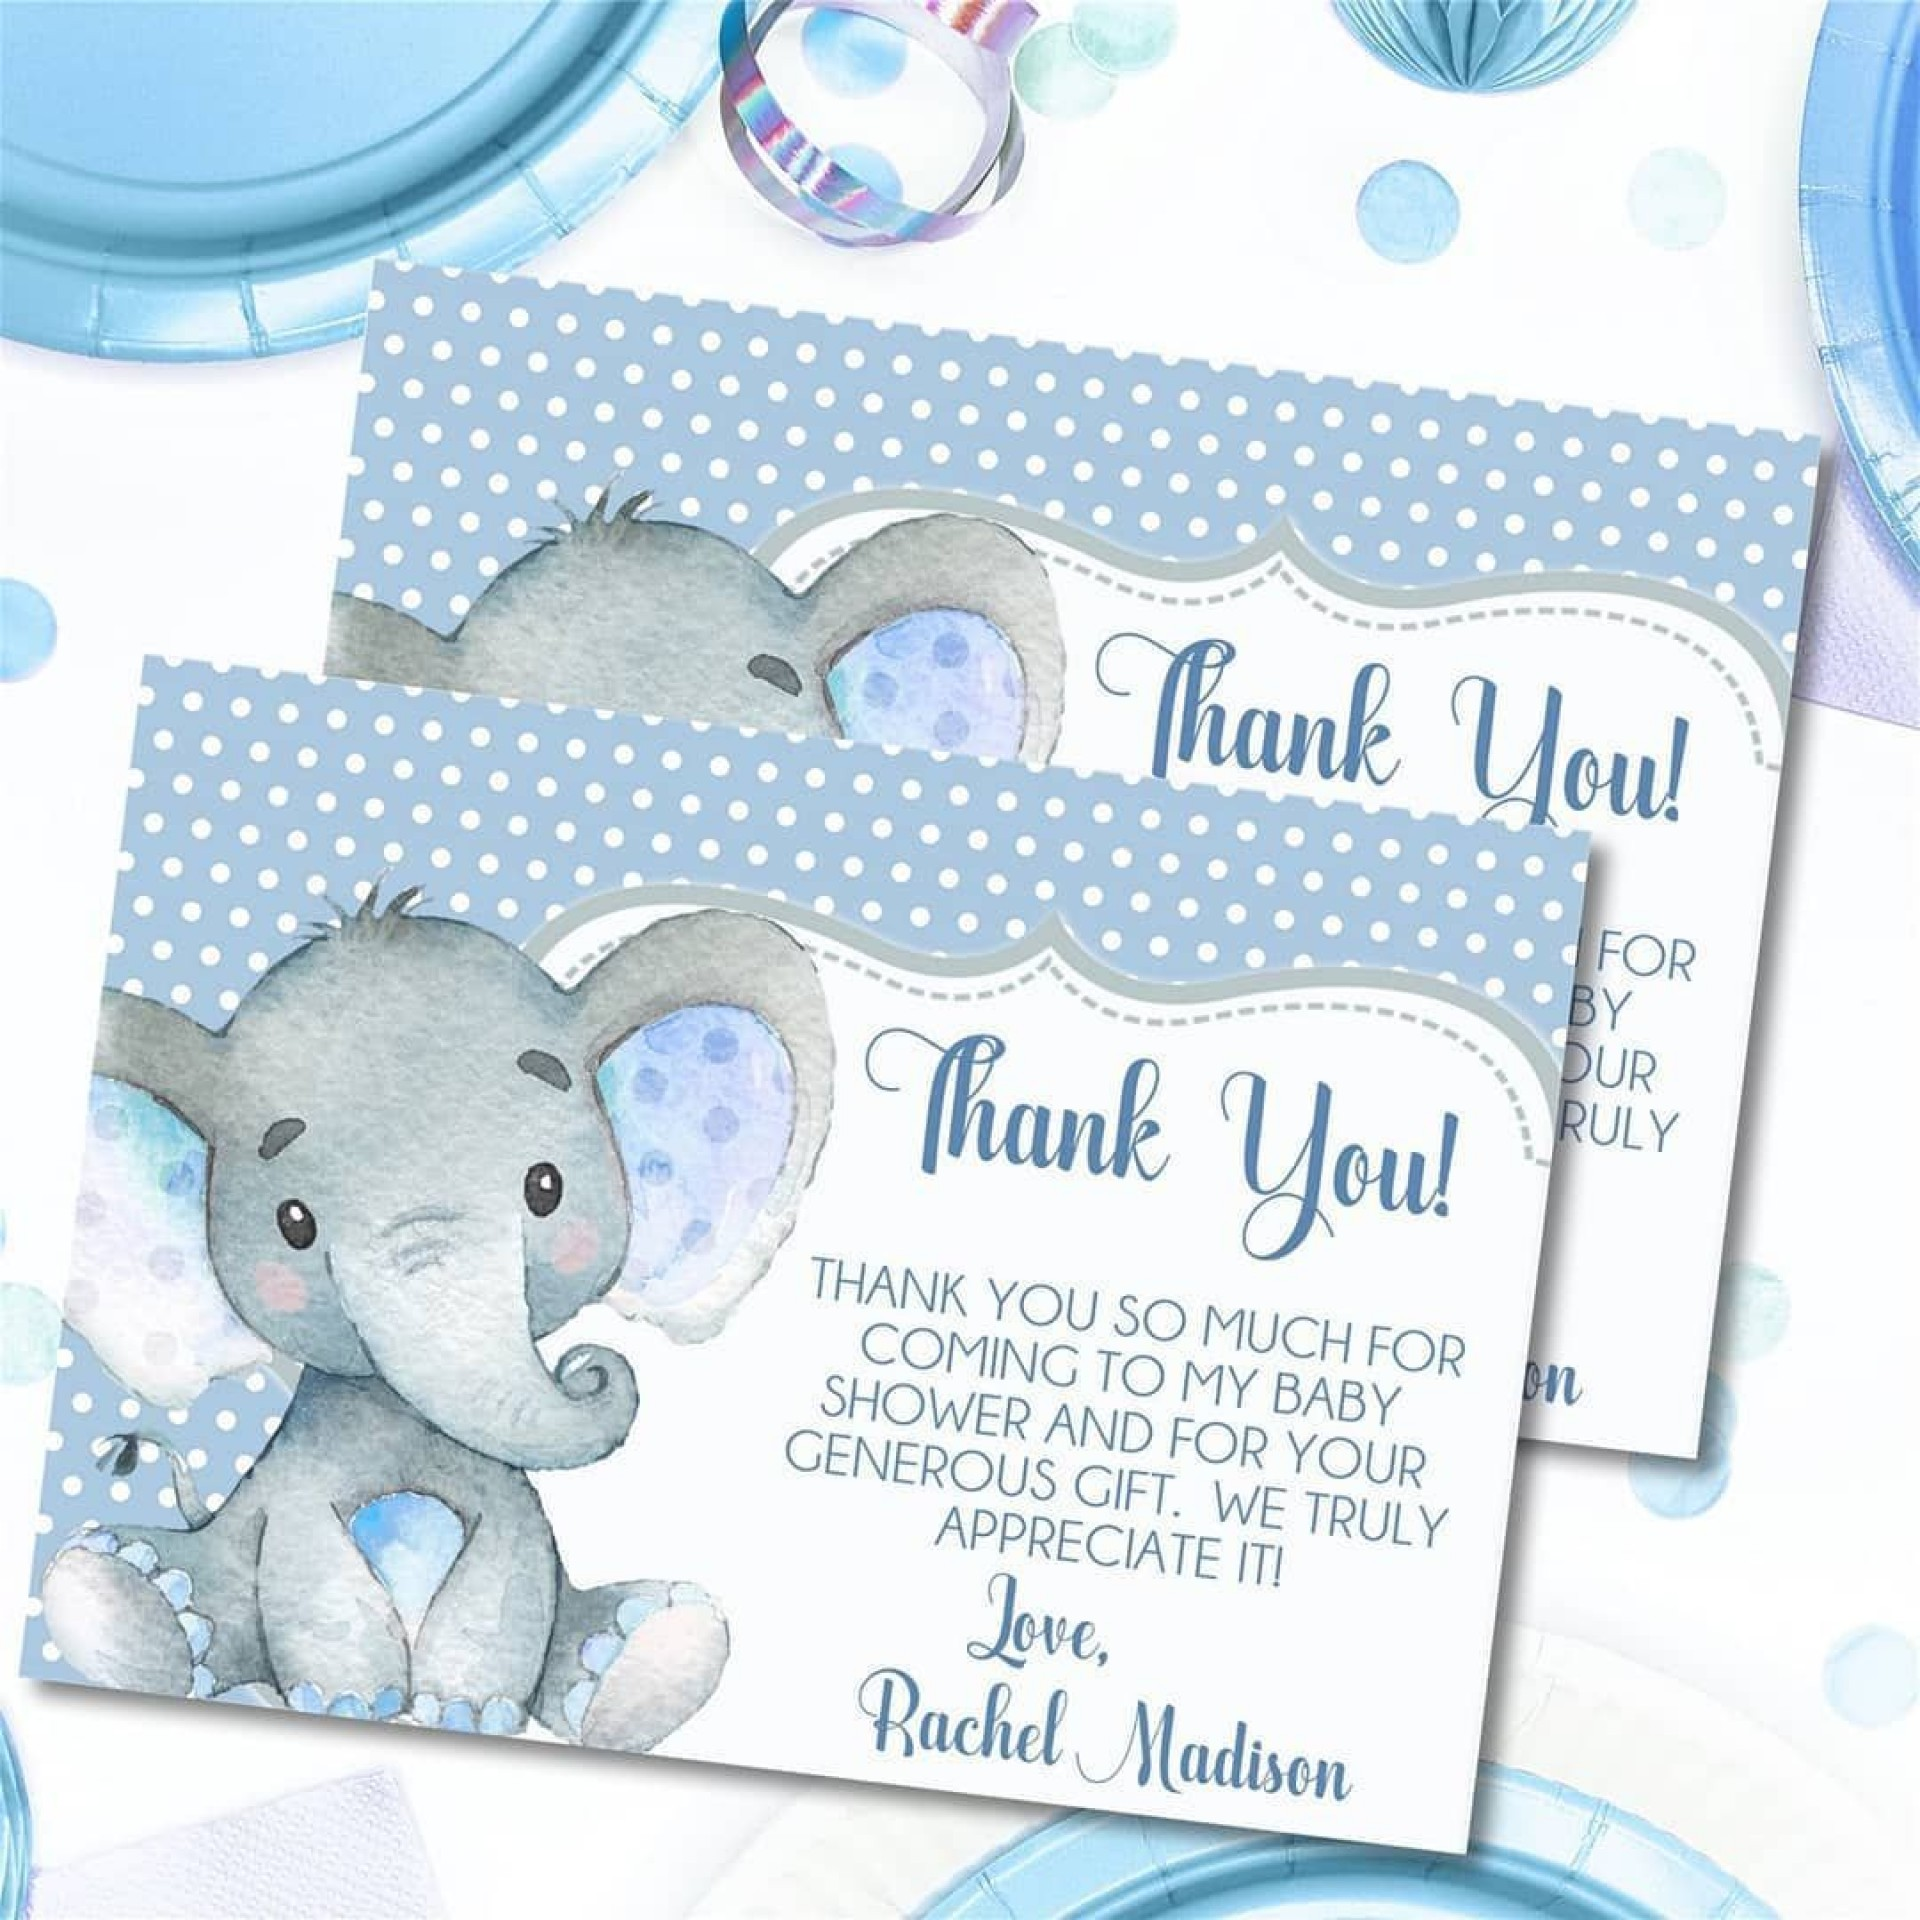 001 Dreaded Thank You Note Template For Baby Shower Gift Example  Card Letter Sample1920